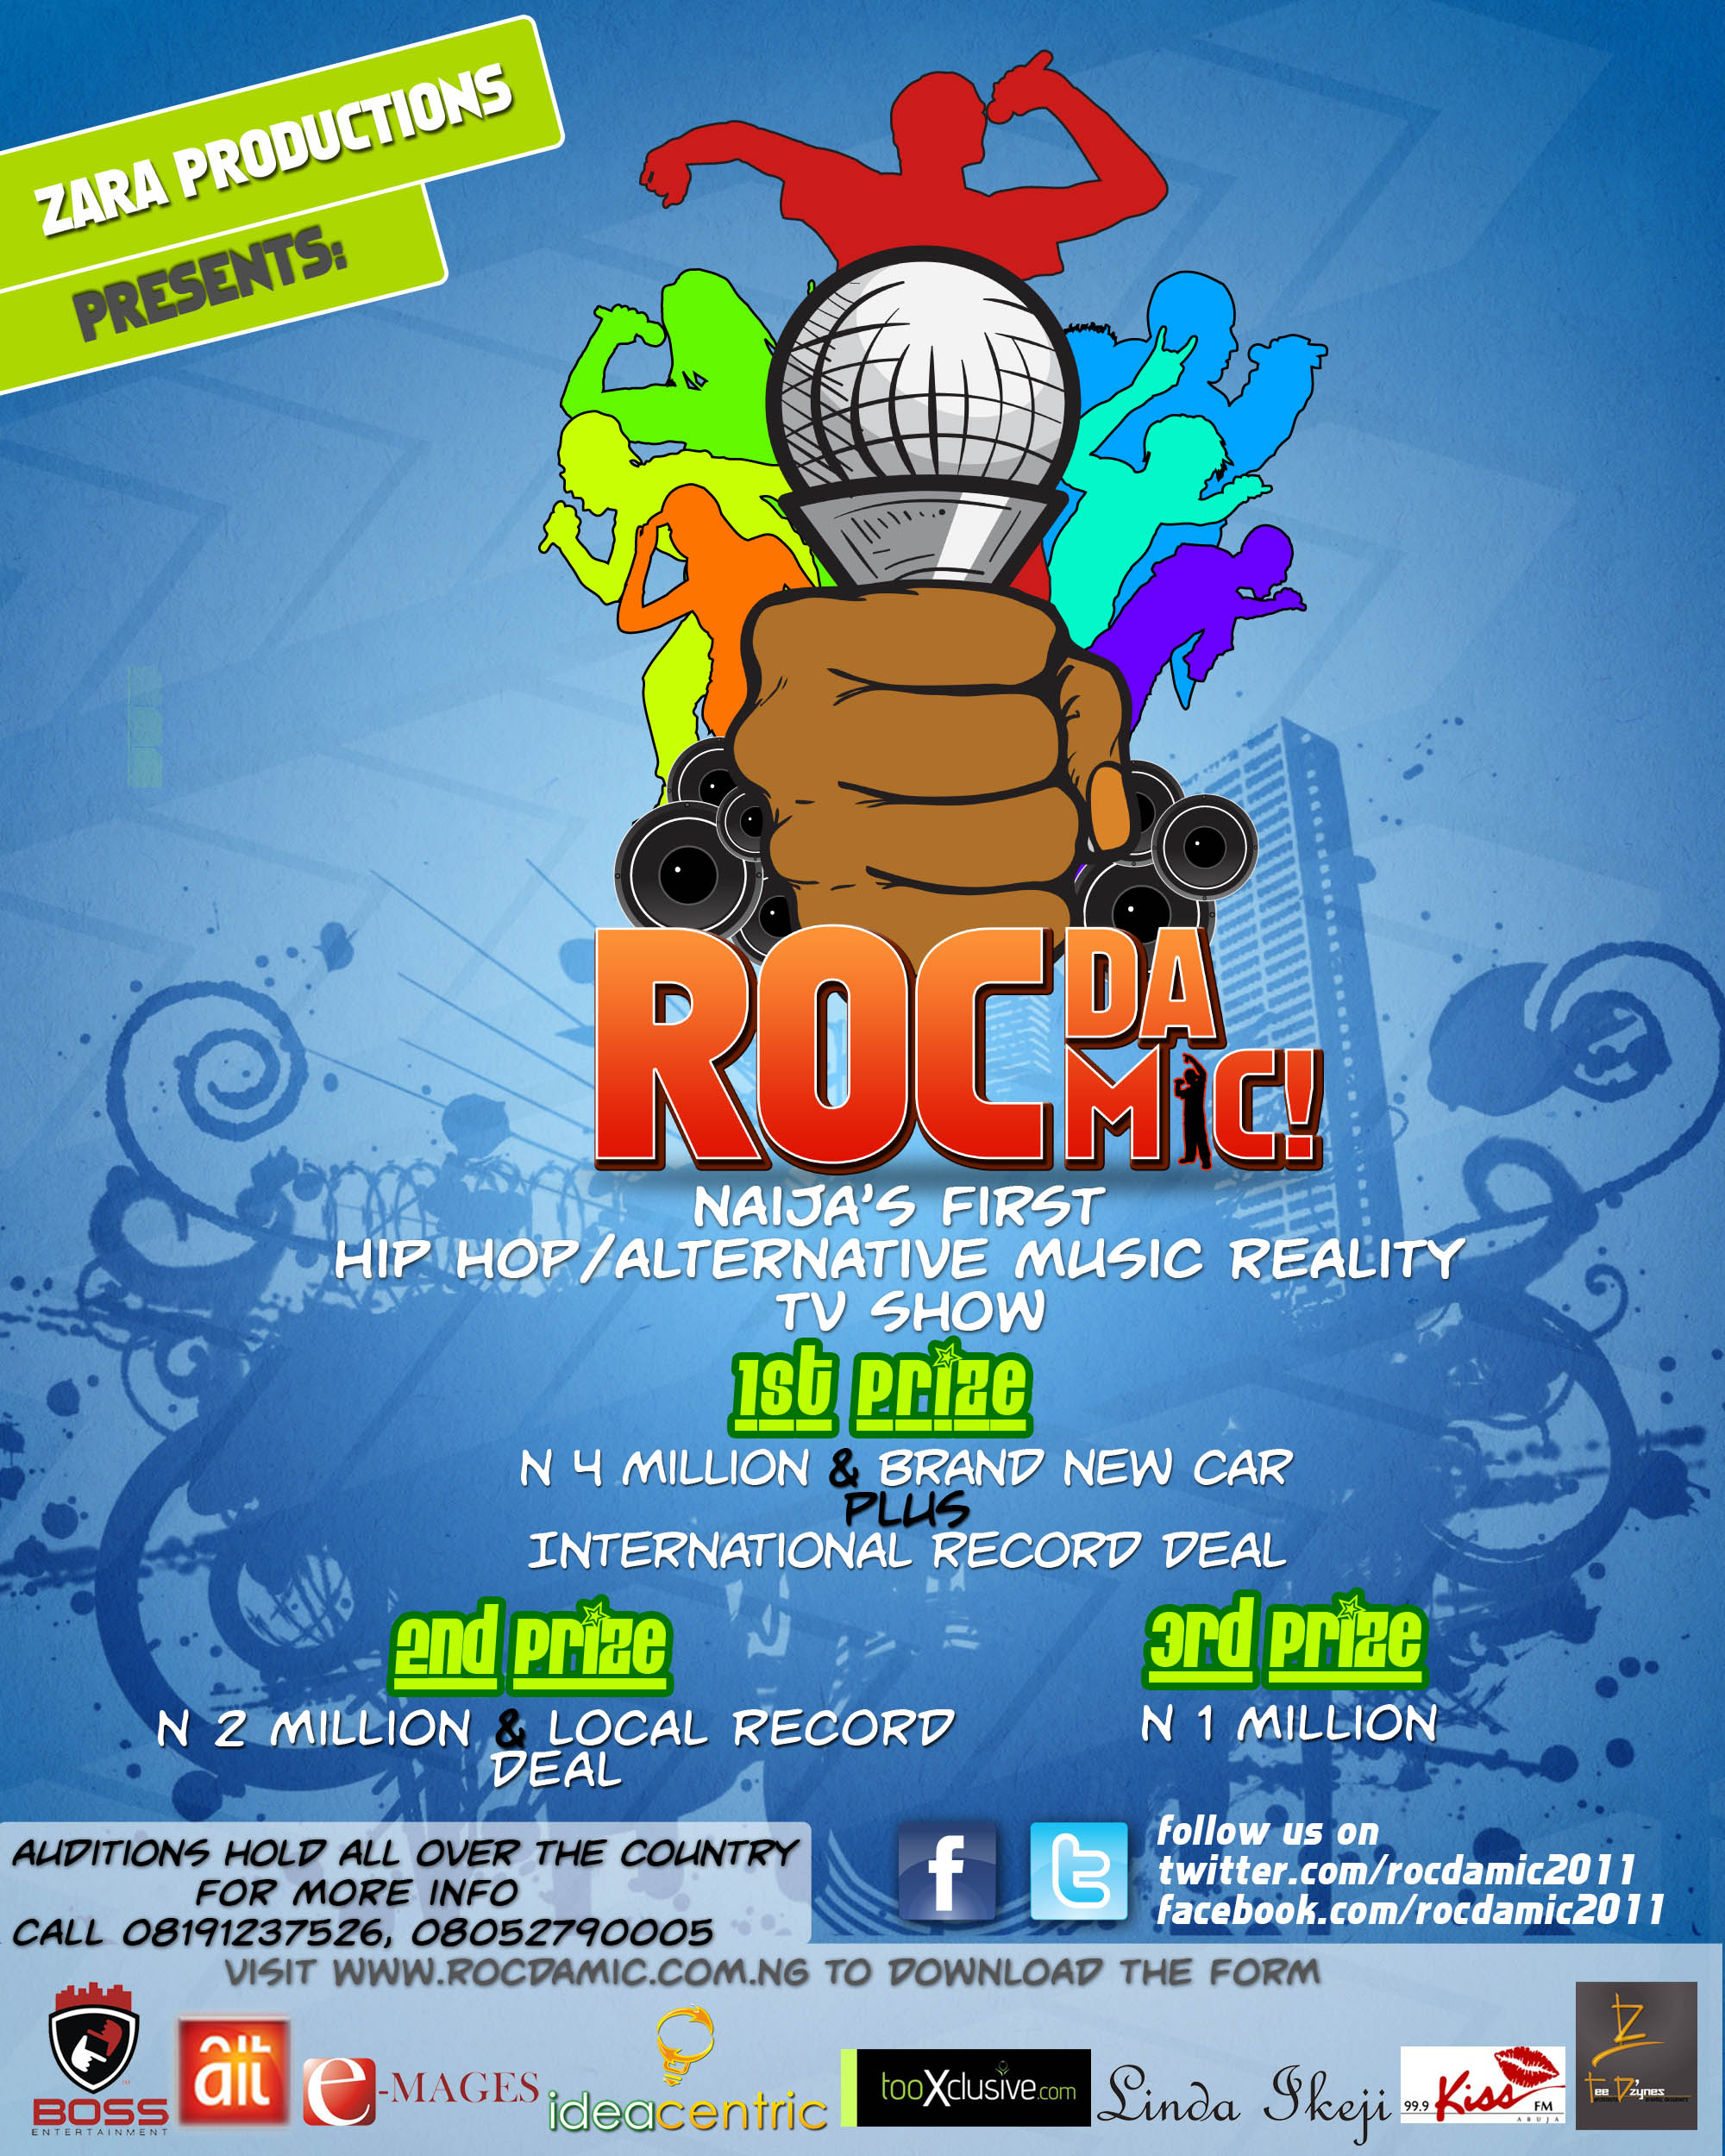 Roc Da Mic poster21 Roc Da Mic Competition   WIN Over 40,000 US Dollars Roc Da Mic Competition